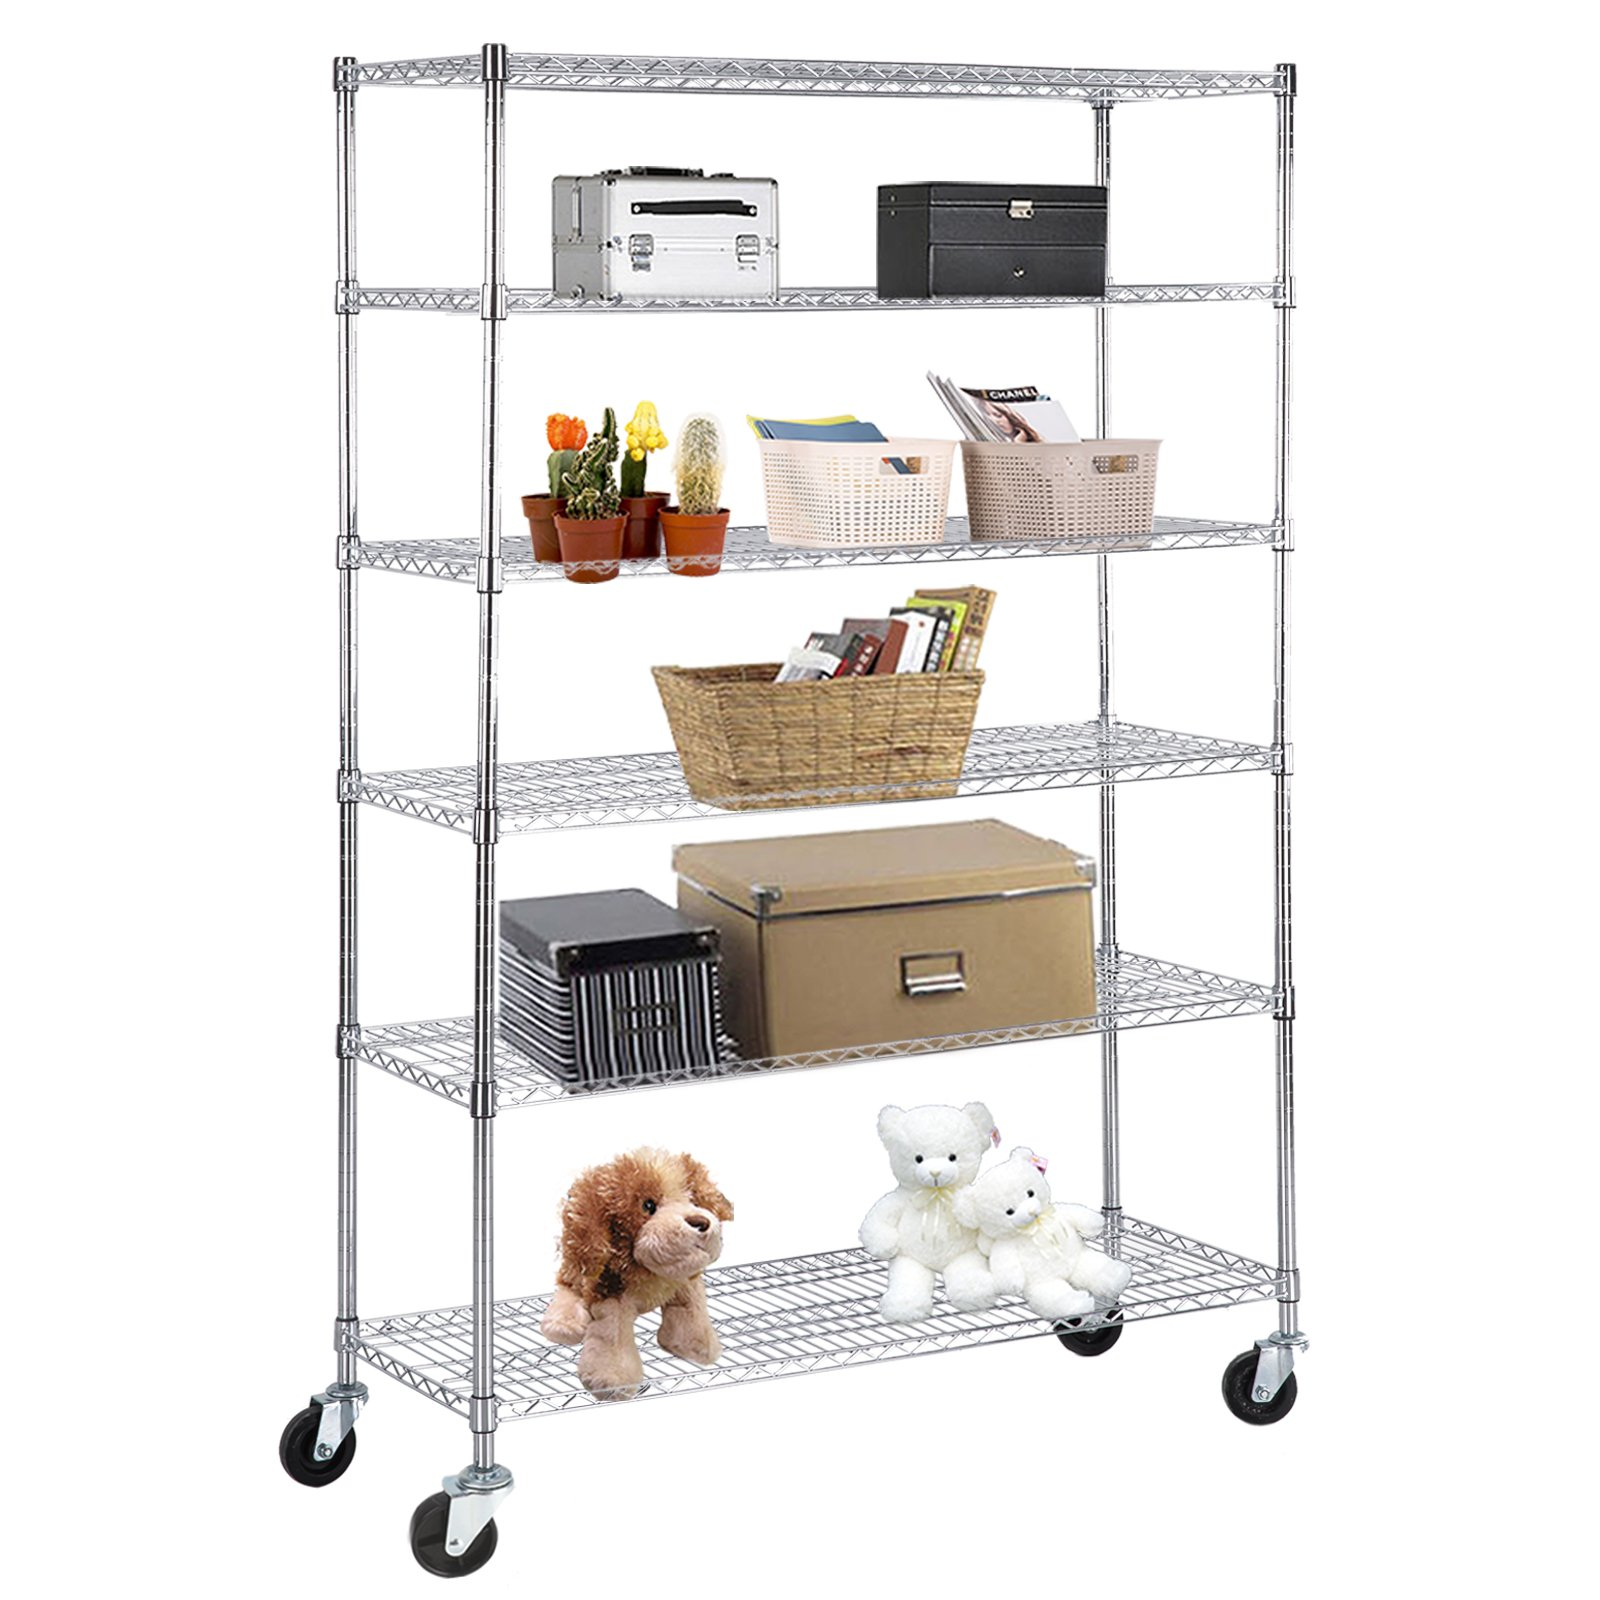 SUNCOO Wire Shelving Unit Storage Rack Metal Kitchen Shelf Stainless Steel Adjustable 6 Tier Shelves with Wheels Chrome 48'' W x 82'' H x 18'' D